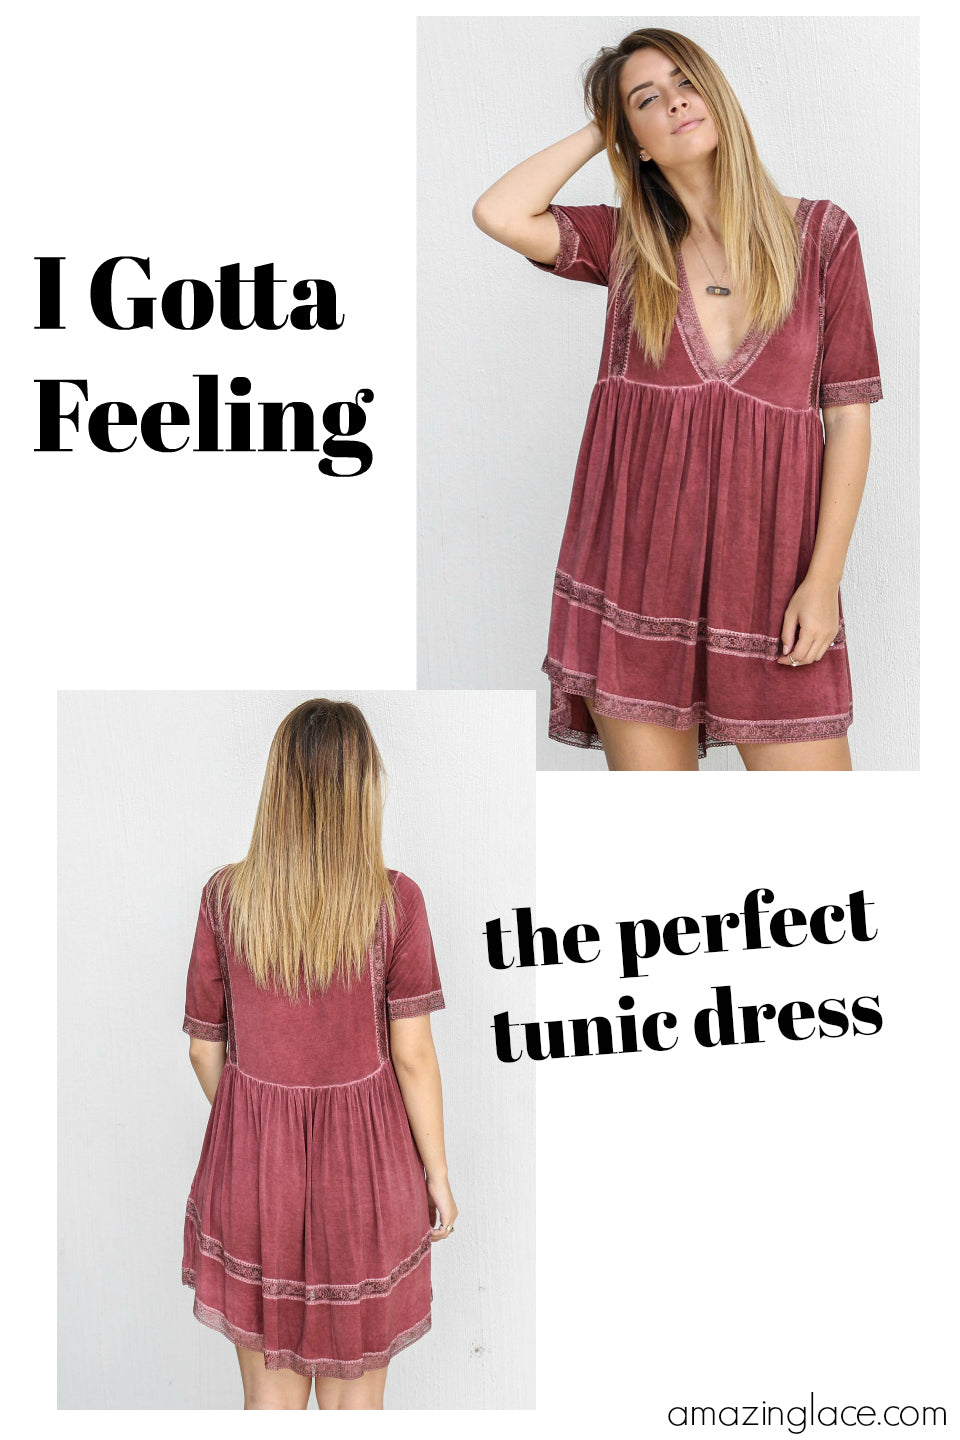 The Perfect Tunic Dress